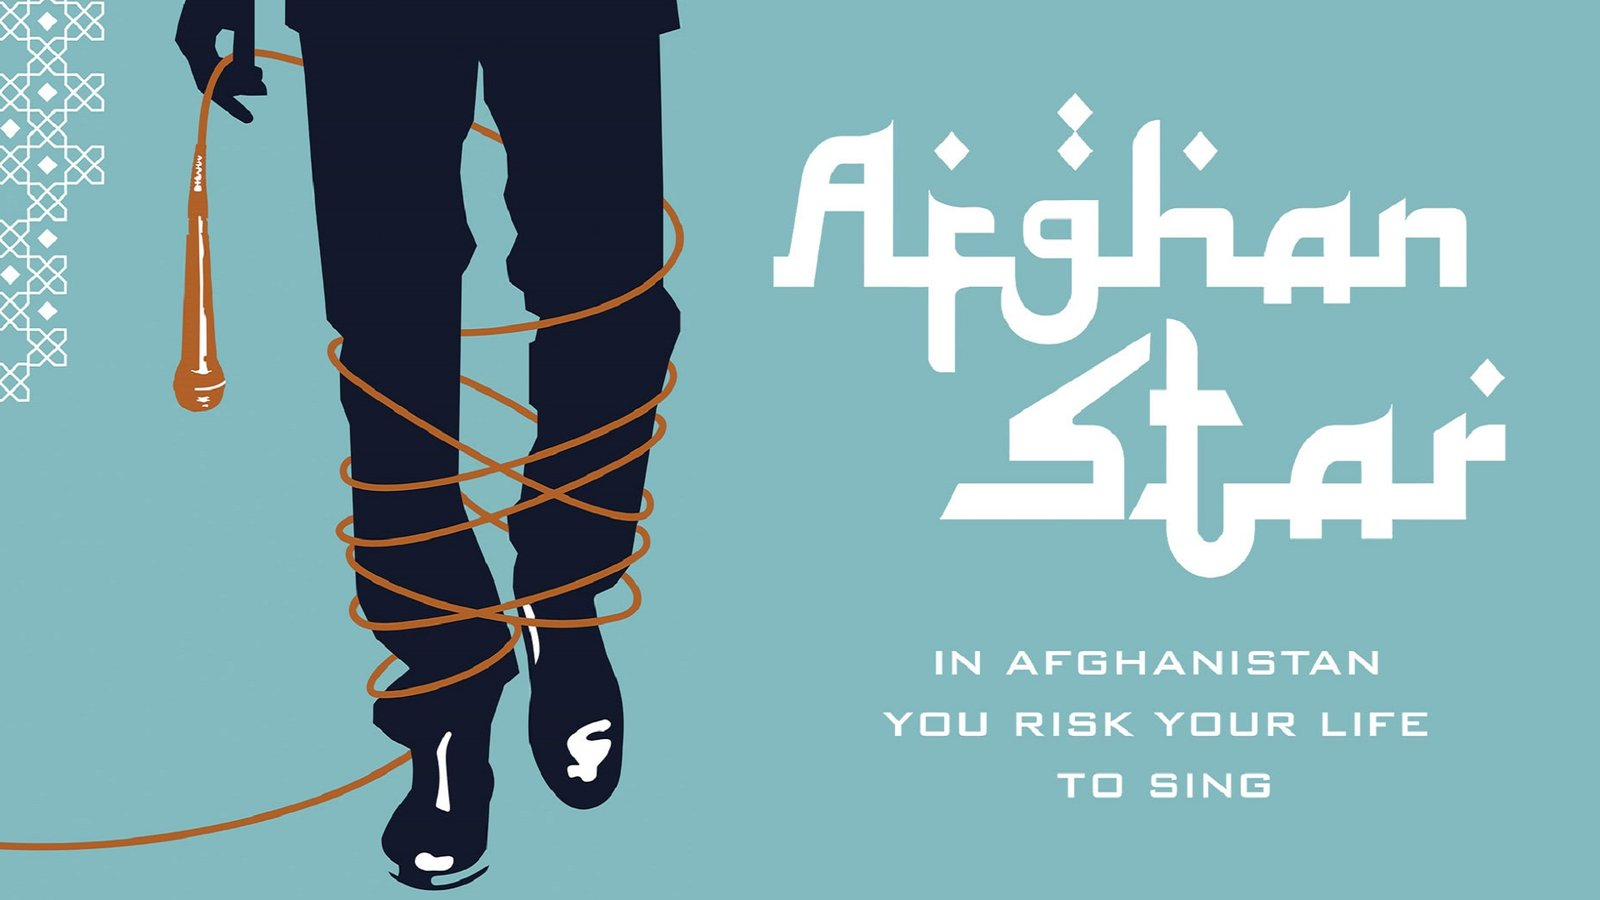 Afghan Star - Following the Contestants of a Pop Music Competition in Afghanistan